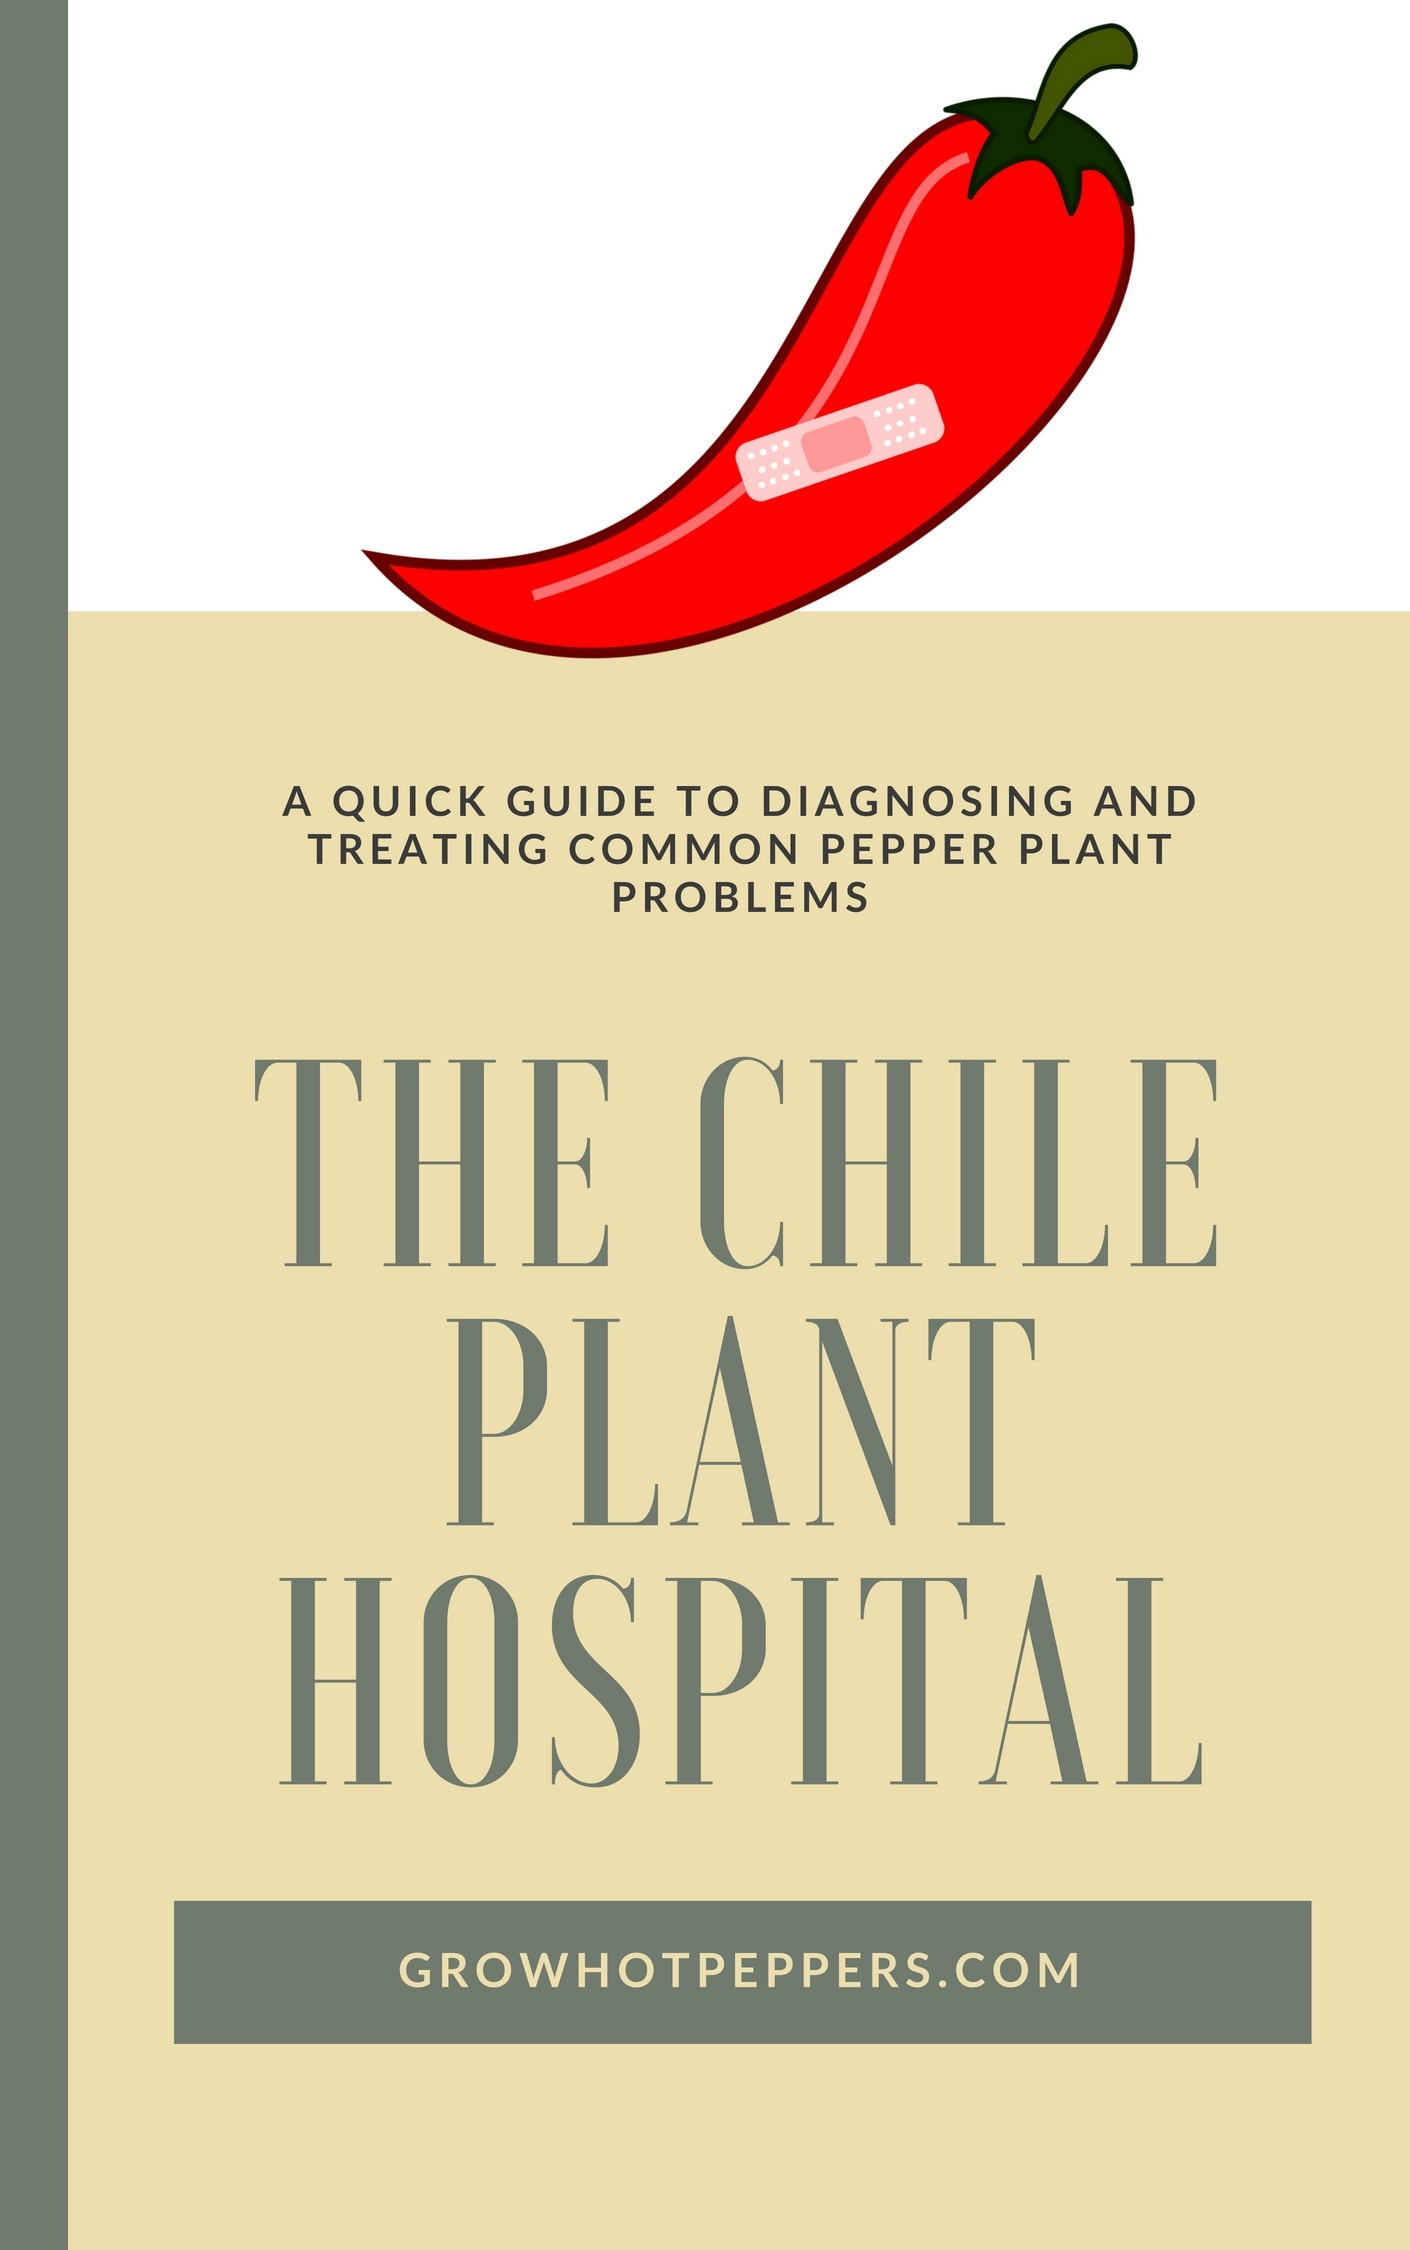 The Chile Plant Hospital Ebook Cover